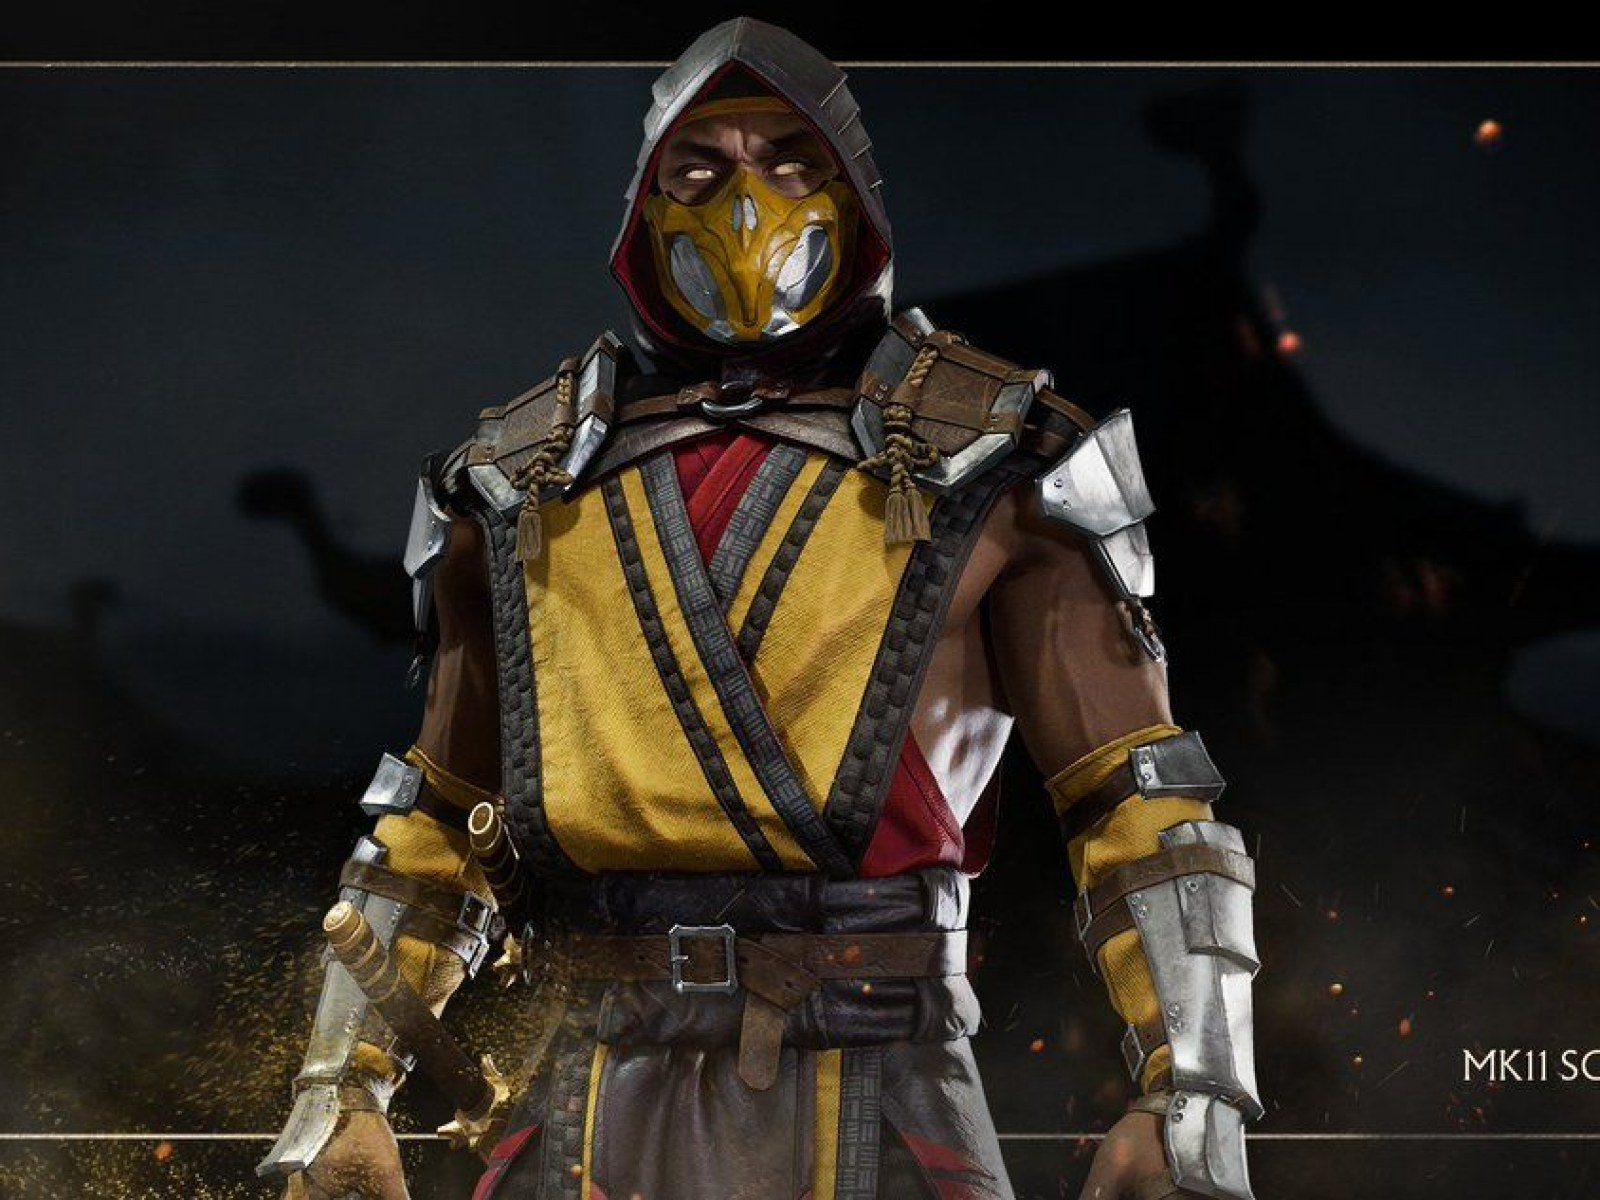 mortal kombat 11 mk11 scorpion wallpaper